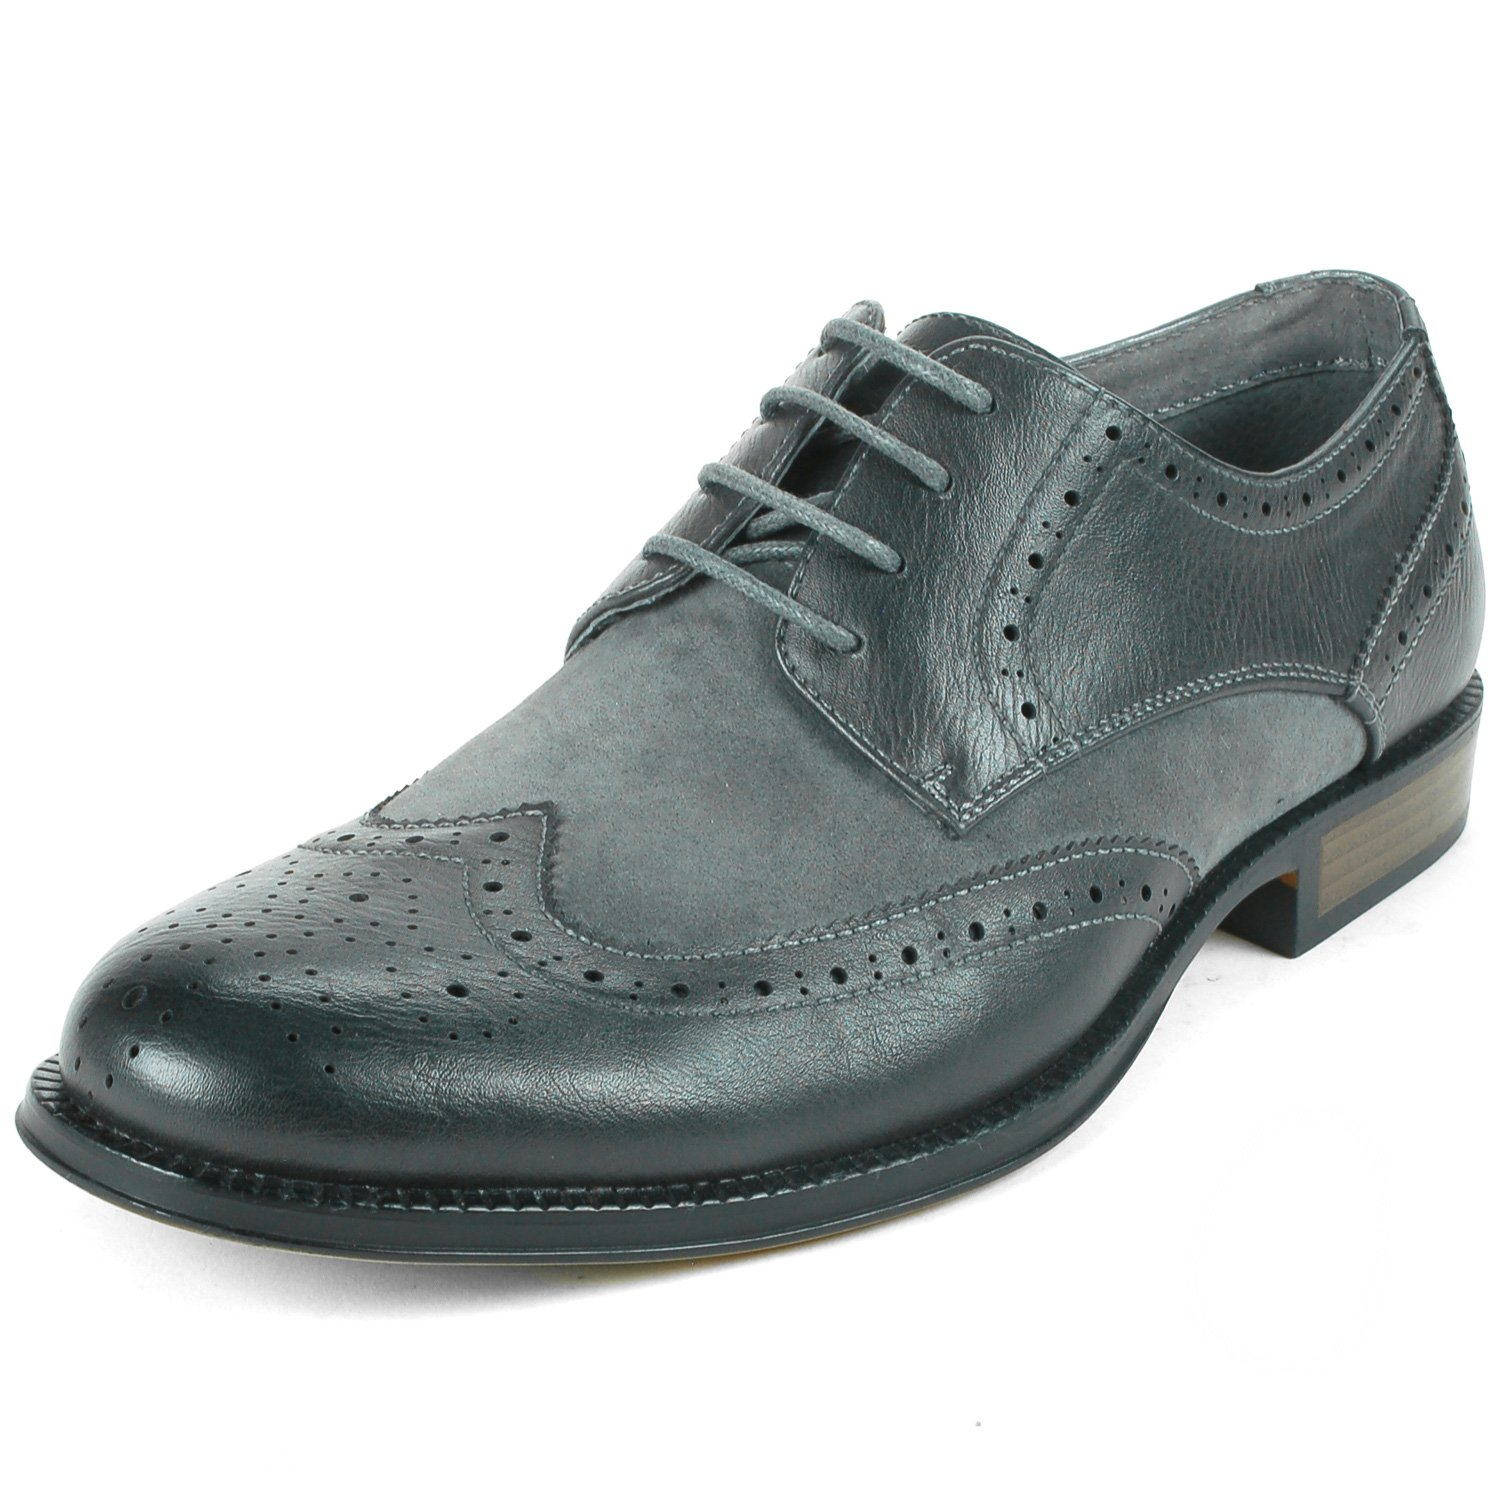 1920s Style Mens Shoes | Peaky Blinders Boots  Wing Tip Oxfords Two-tone Brogue Medallion $34.99 AT vintagedancer.com